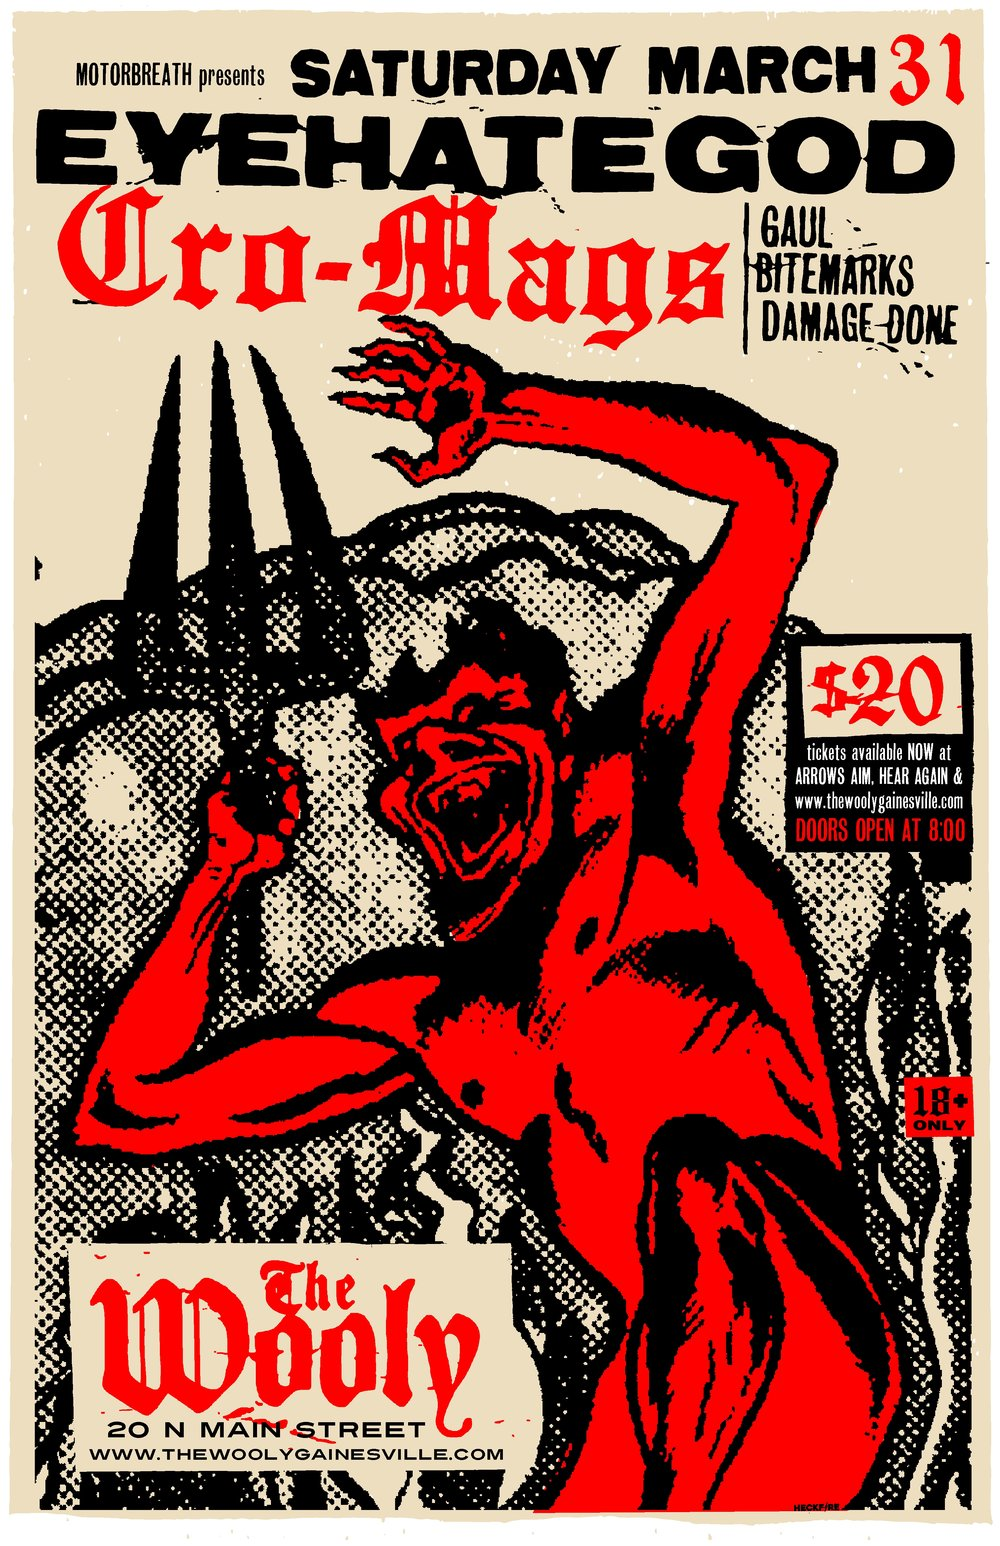 "Saturday, March 31st Motorbreath GVL Presents:  EYEHATEGOD (30th Anniversary Tour) Cro-Mags Gaul, Bite Marks, Damage Done  Doors at 8pm $20  Buy tickets  Physical tickets available soon at Arrow's Aim Records  at The Wooly 20 N Main Street Downtown Gainesville FL 32601  ///////////////////////  EYEHATEGOD:  https://www.youtube.com/watch?v=zoqAjL_3mBI   http://eyehategod.ee/   https://www.instagram.com/eyehategodnola/   https://www.facebook.com/OfficialEyeHateGod   https://twitter.com/EyehategodNola   Eyehategod (also abbreviated and referred to as EHG) is an American sludge metal band from New Orleans who formed in 1988.[1] They have become one of the most well known bands to emerge from the NOLA metal scene. Throughout the years, their core line-up has remained.  Eyehategod have noted Melvins, Carnivore, The Obsessed, Discharge, Black Flag, Corrosion of Conformity, Black Sabbath, Celtic Frost, Confessor and Saint Vitus[2] as key influences to their sound. Heavy, detuned, and bluesy guitar riffs dominate the band's discography. They are combined with walls of feedback and tortured vocals to create a harsh misanthropic vibe.   ///////////////////////  CRO MAGS:  http://www.cro-mags.com/   https://www.facebook.com/Cro-Mags-28749578197/   https://www.youtube.com/watch?v=0BLcCM8nPYQ   The Cro-Mags are an American hardcore punk turned crossover thrash band from New York City. The band, which had a strong cult following, has released five studio albums, their first two considered the most influential. According to AllMusic, ""before the Cro-Mags, the idea of combining heavy metal and hardcore together was unheard of. But with the release of their classic debut, The Age of Quarrel, hardcore-metal was born, and in its wake came a legion of similarly styled offspring (Biohazard, Vision of Disorder, etc.).""    Things to know: -18+ only, unless legal guardian is present. -No Backpacks or Bags of any kind allowed inside the venue. -No smoking of any kind allowed inside."